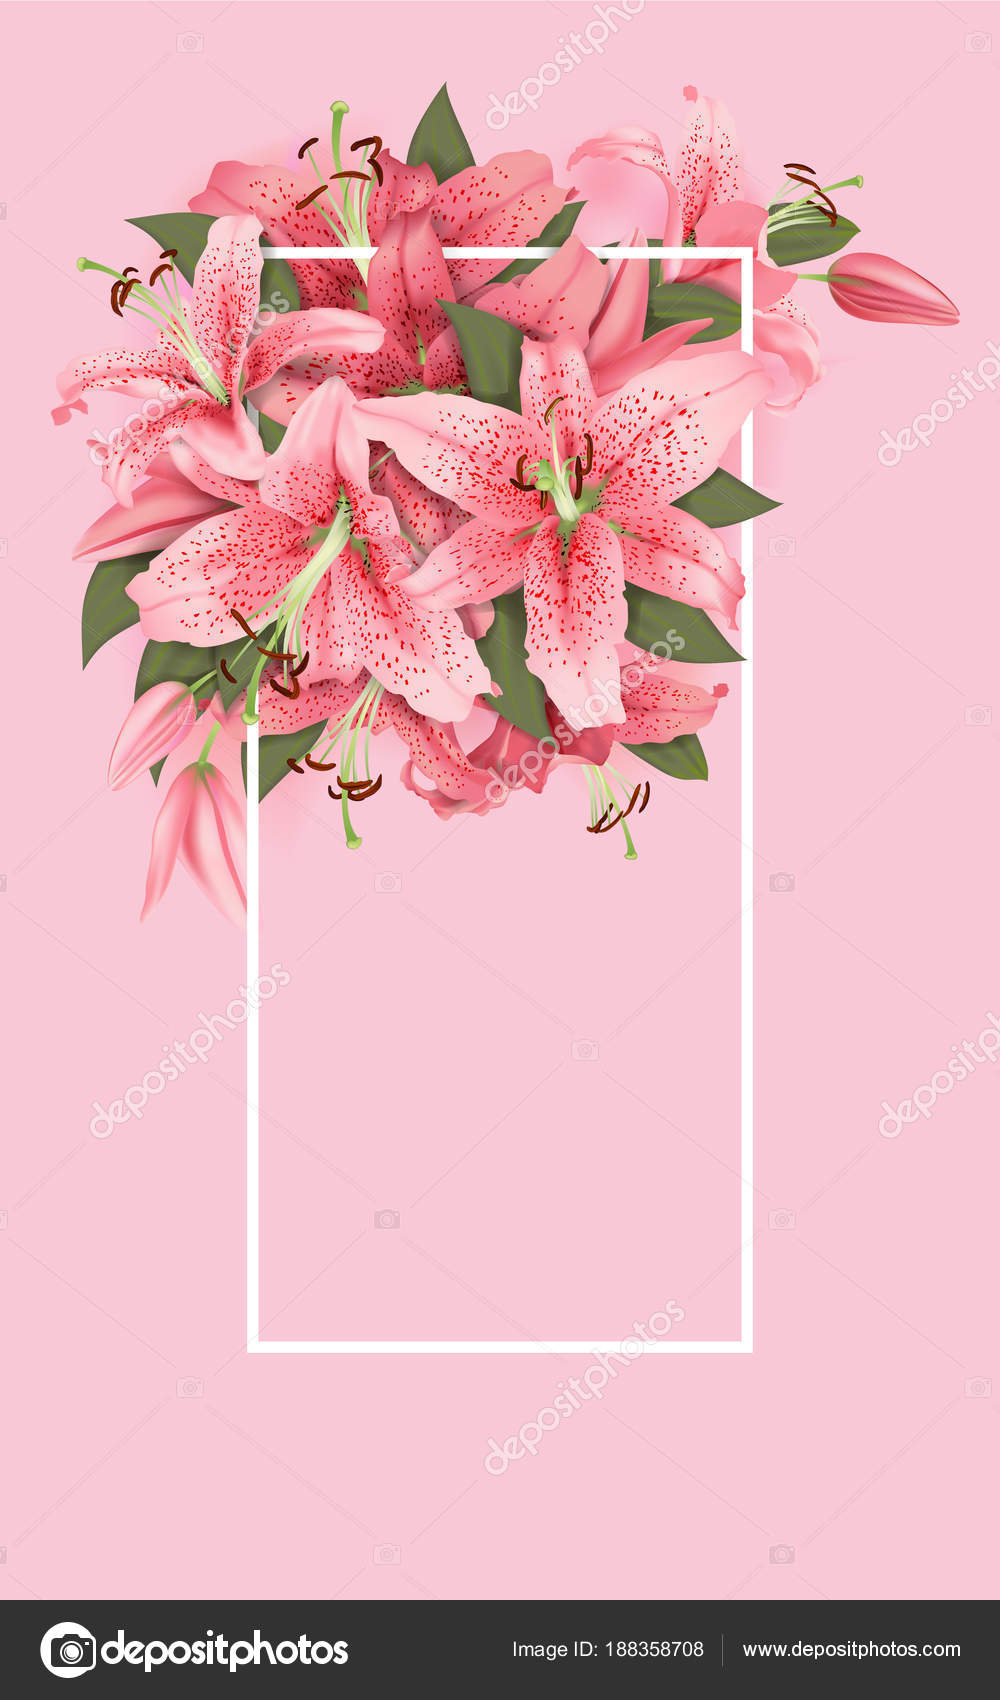 Wedding invitation lily flowers vector illustration vetor de stock wedding invitation lily flowers vector illustration vetor de stock stopboris Images